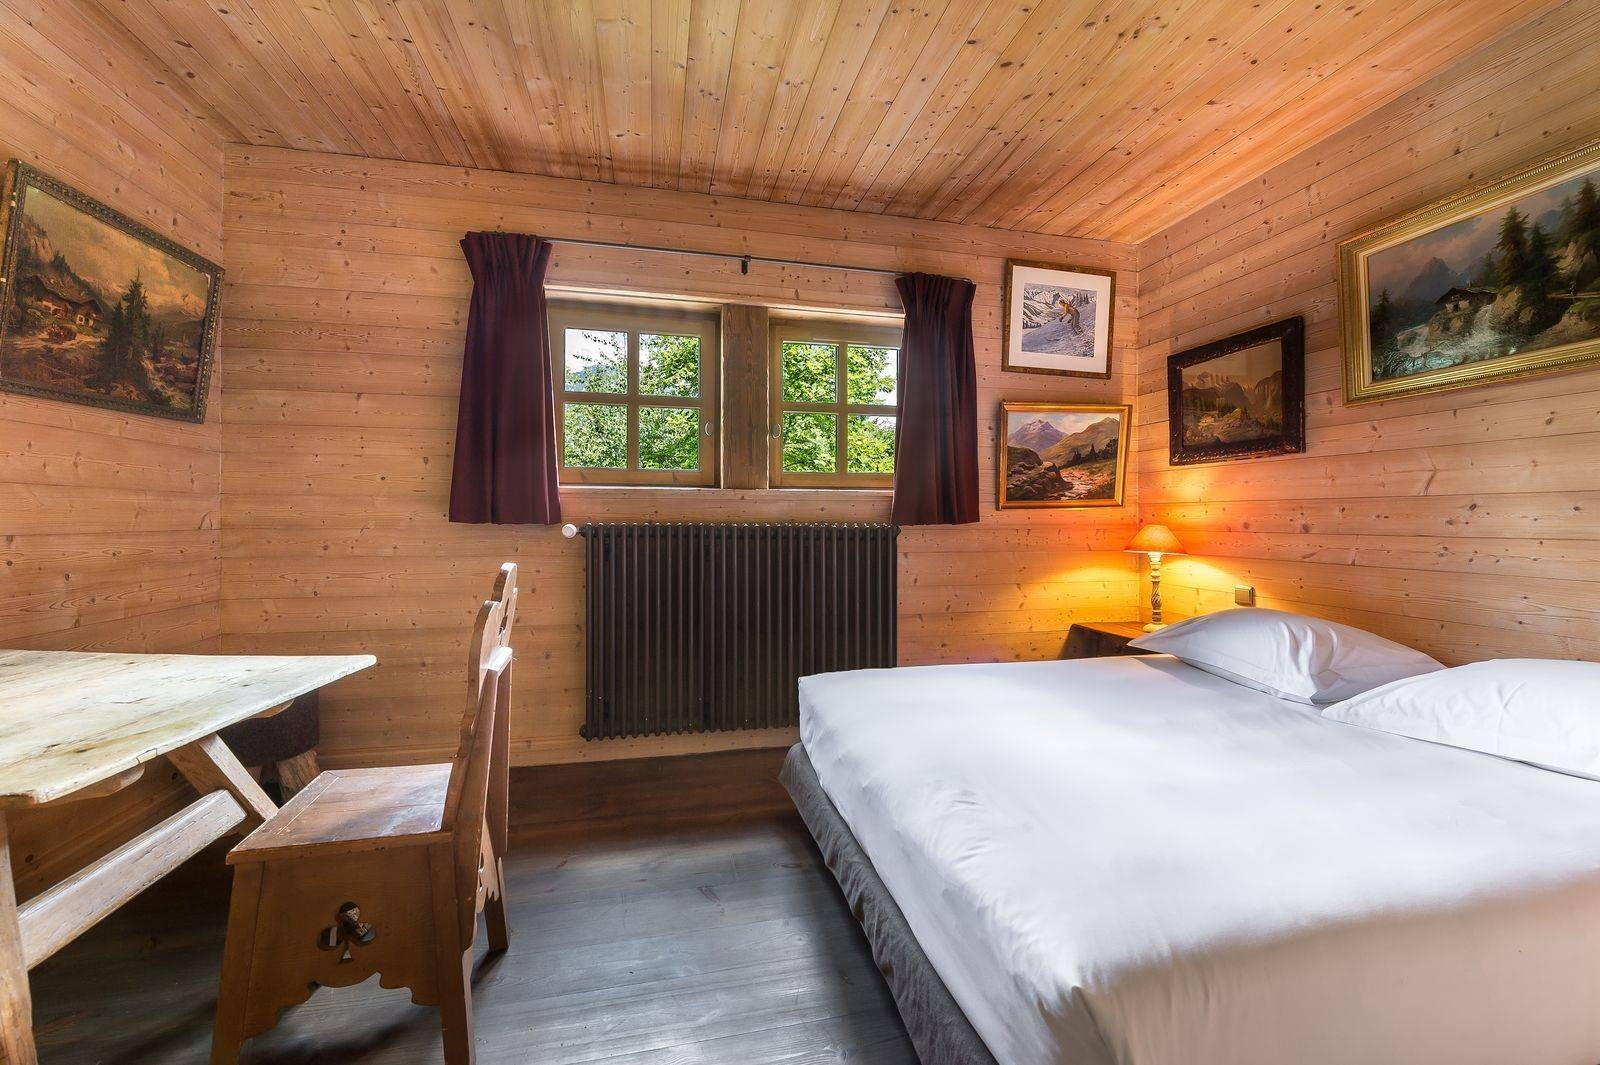 Courchevel 1550 Location Chalet Luxe Tazoy Chambre 4